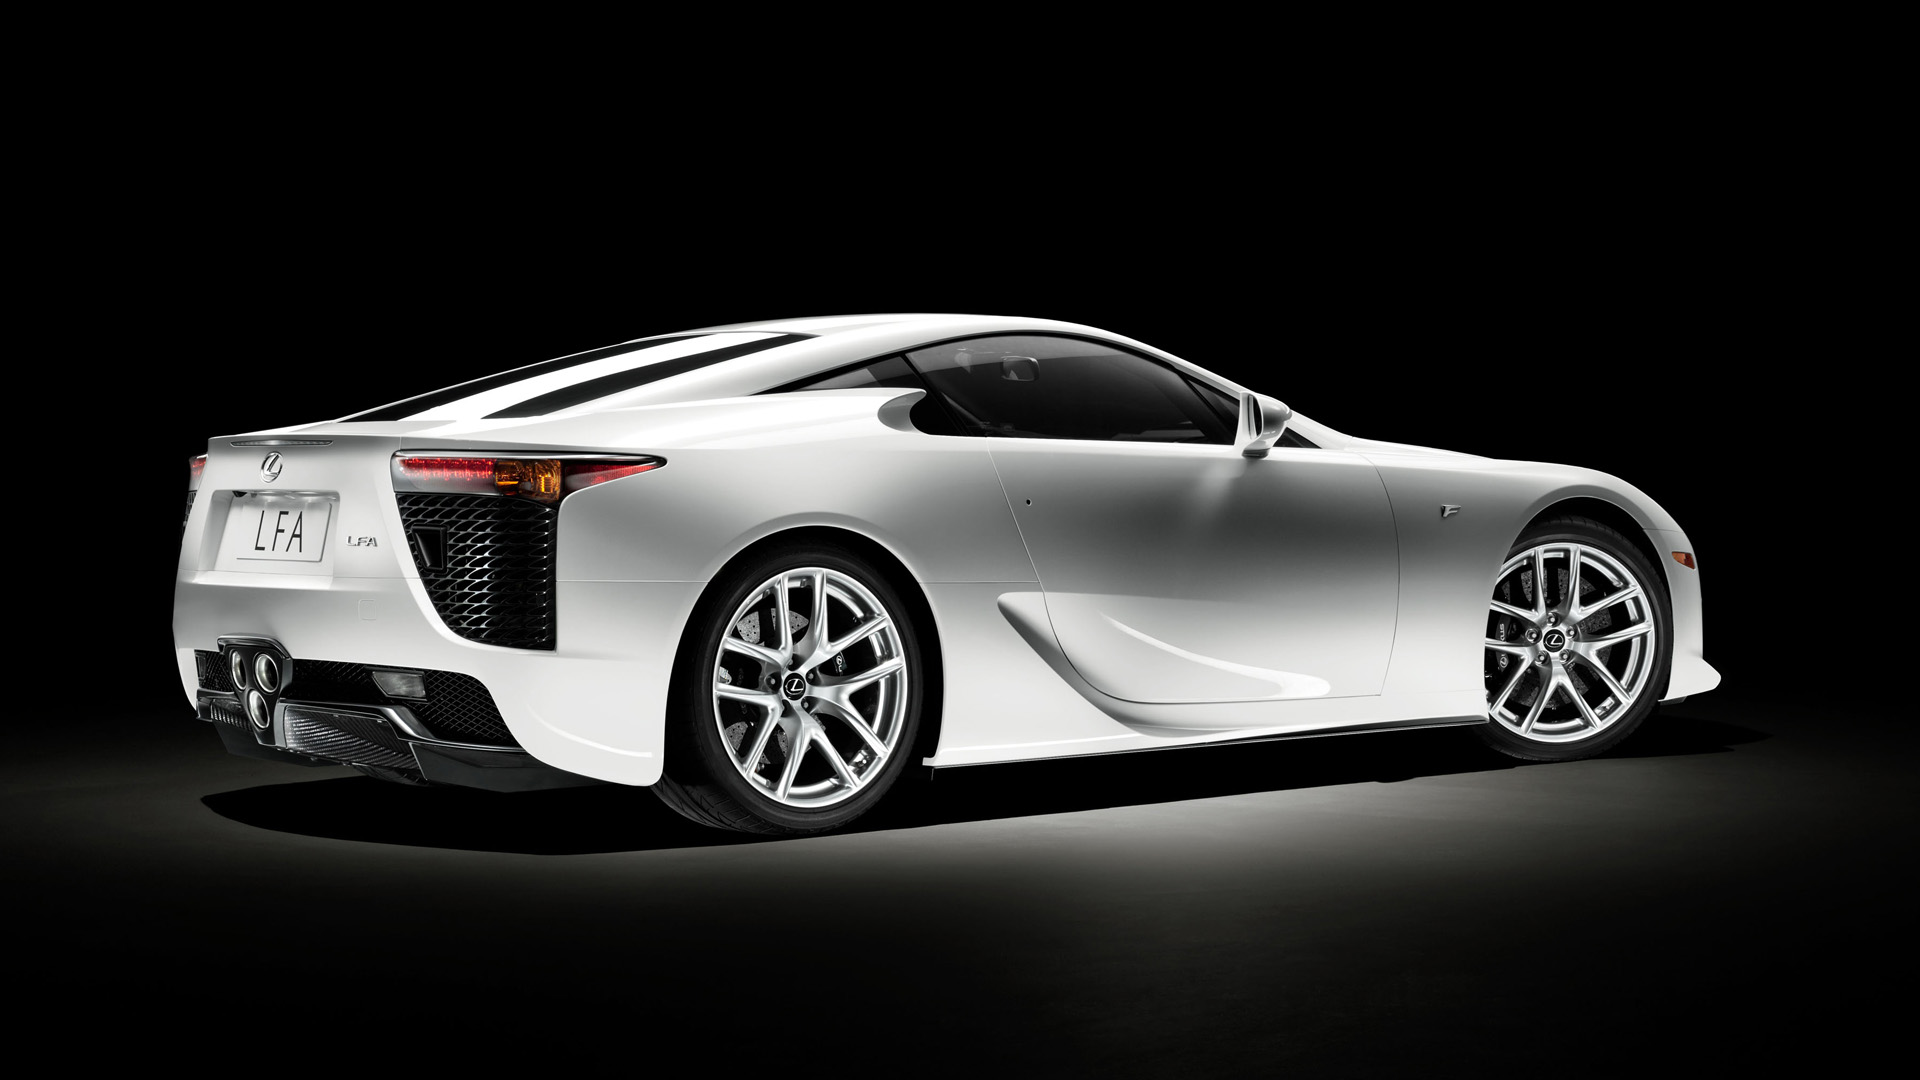 Lexus LFA photo 01